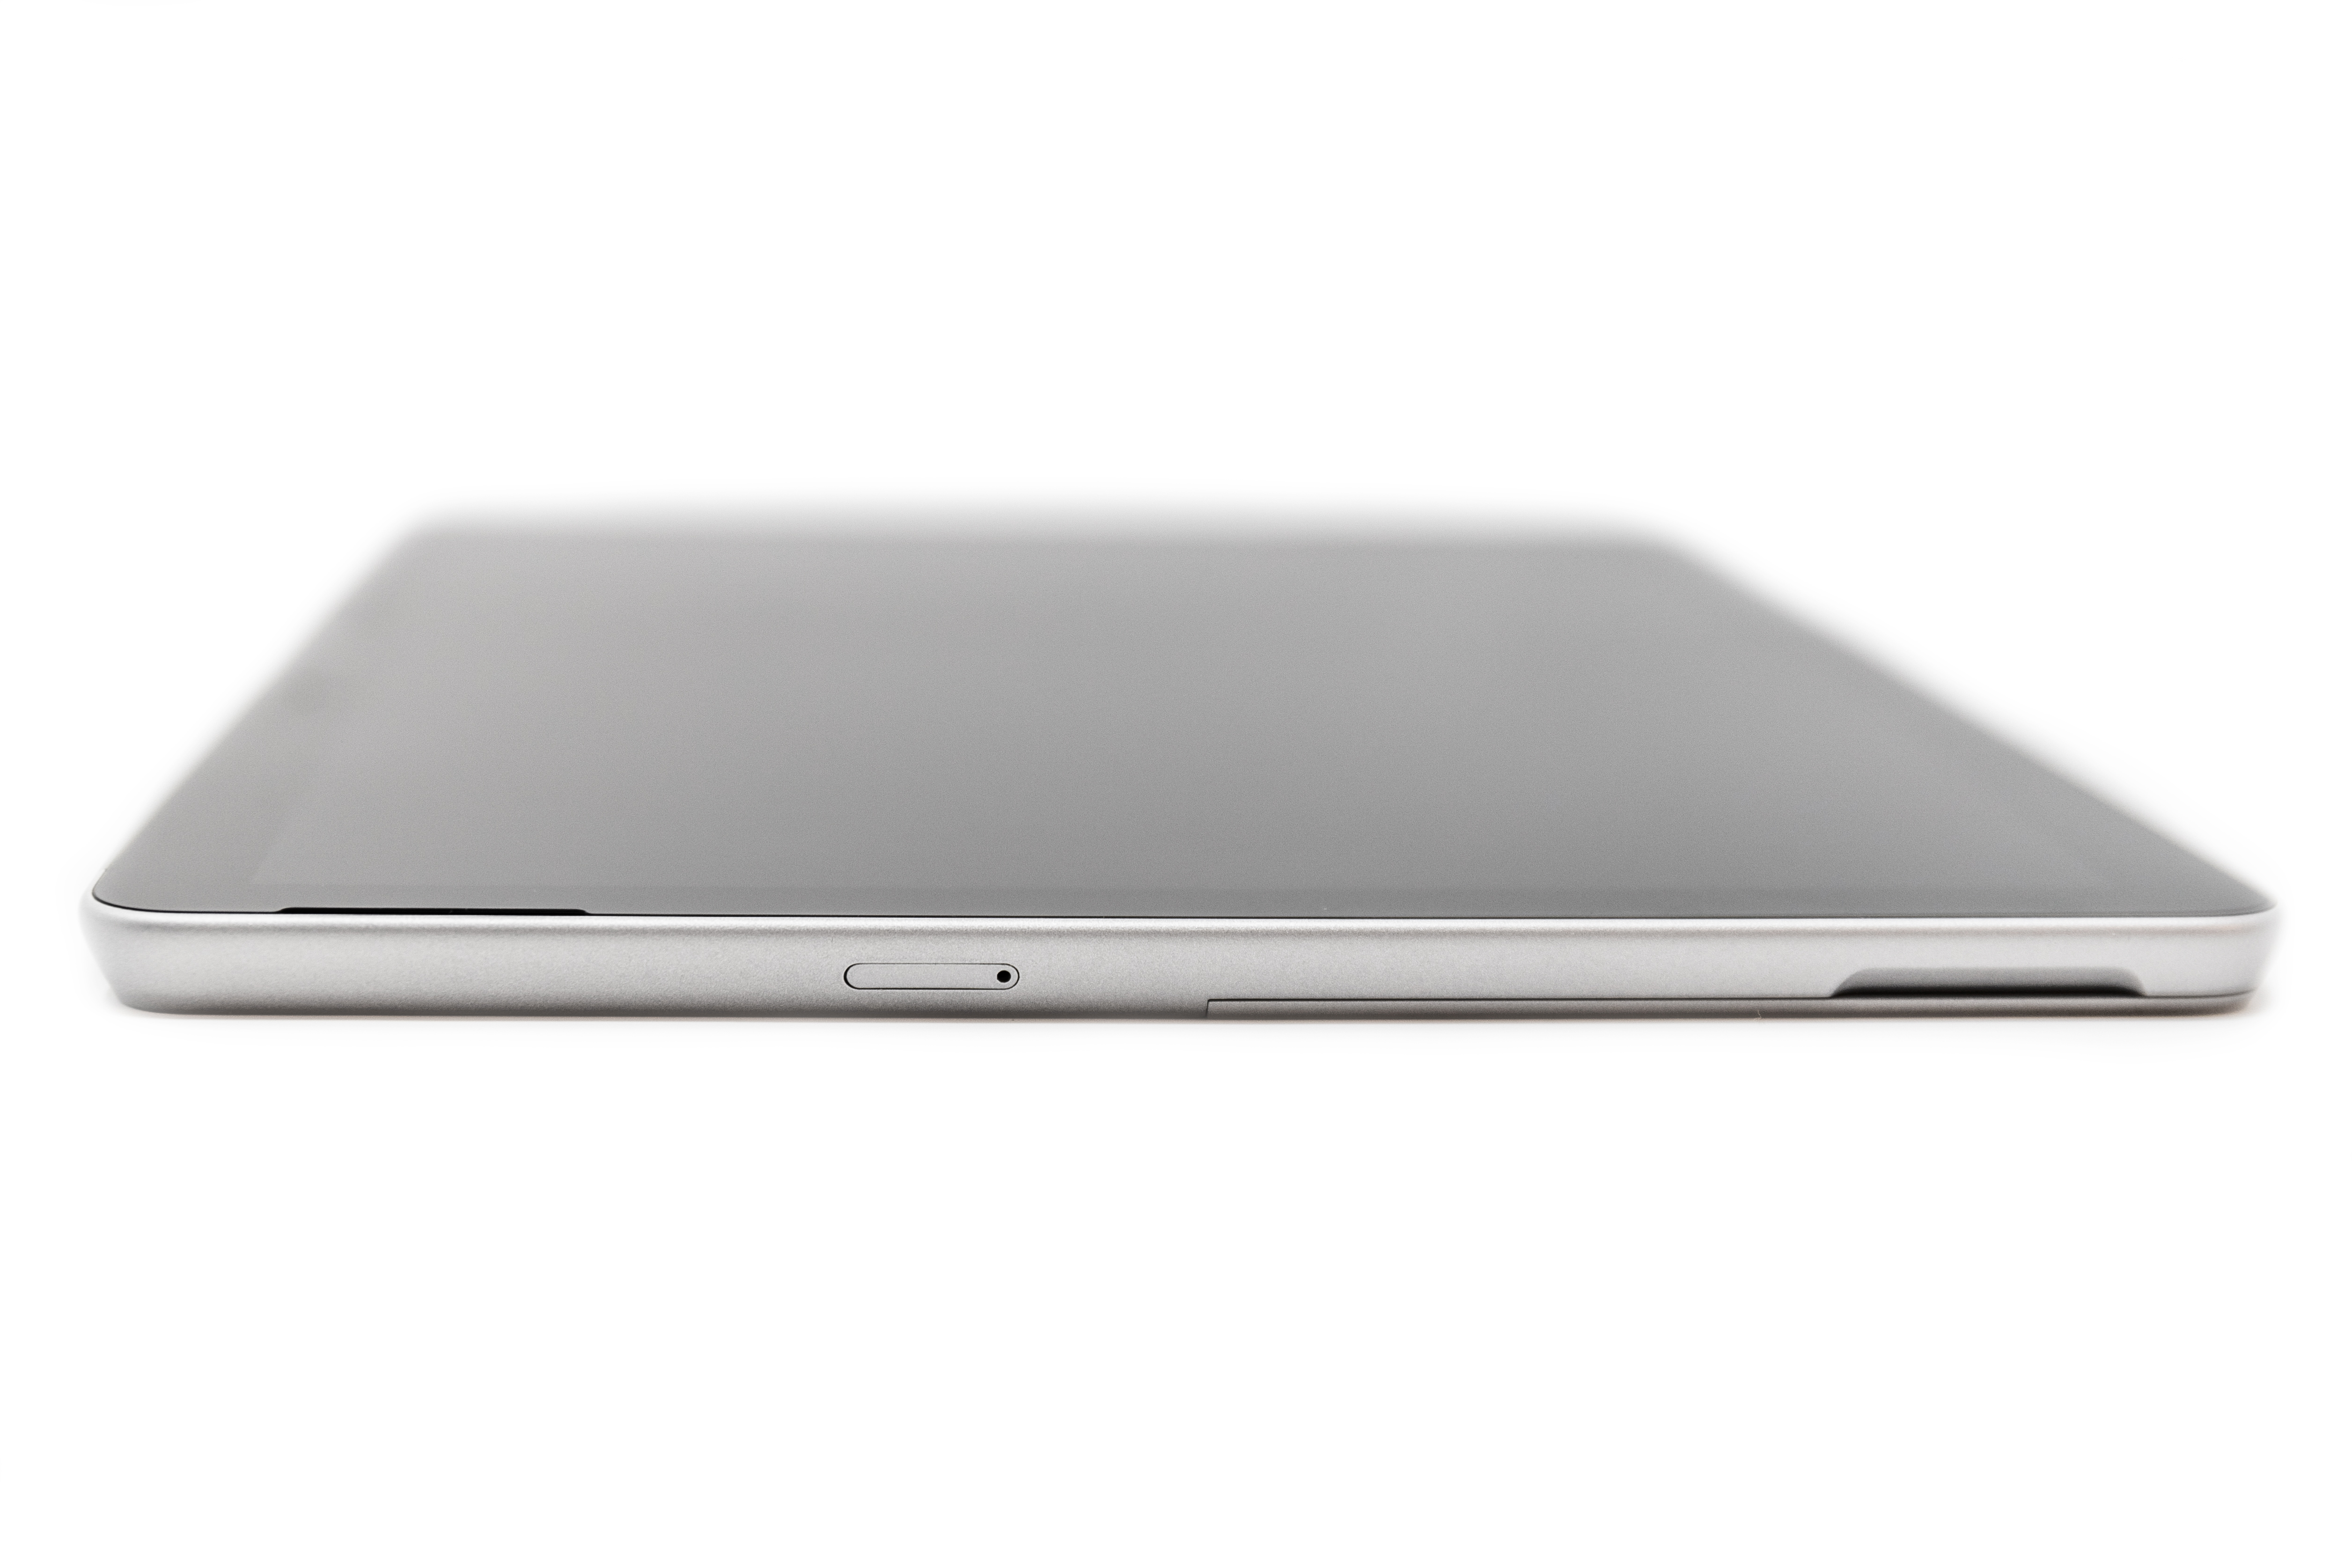 An image of a Surface that shows the SIM card slot.